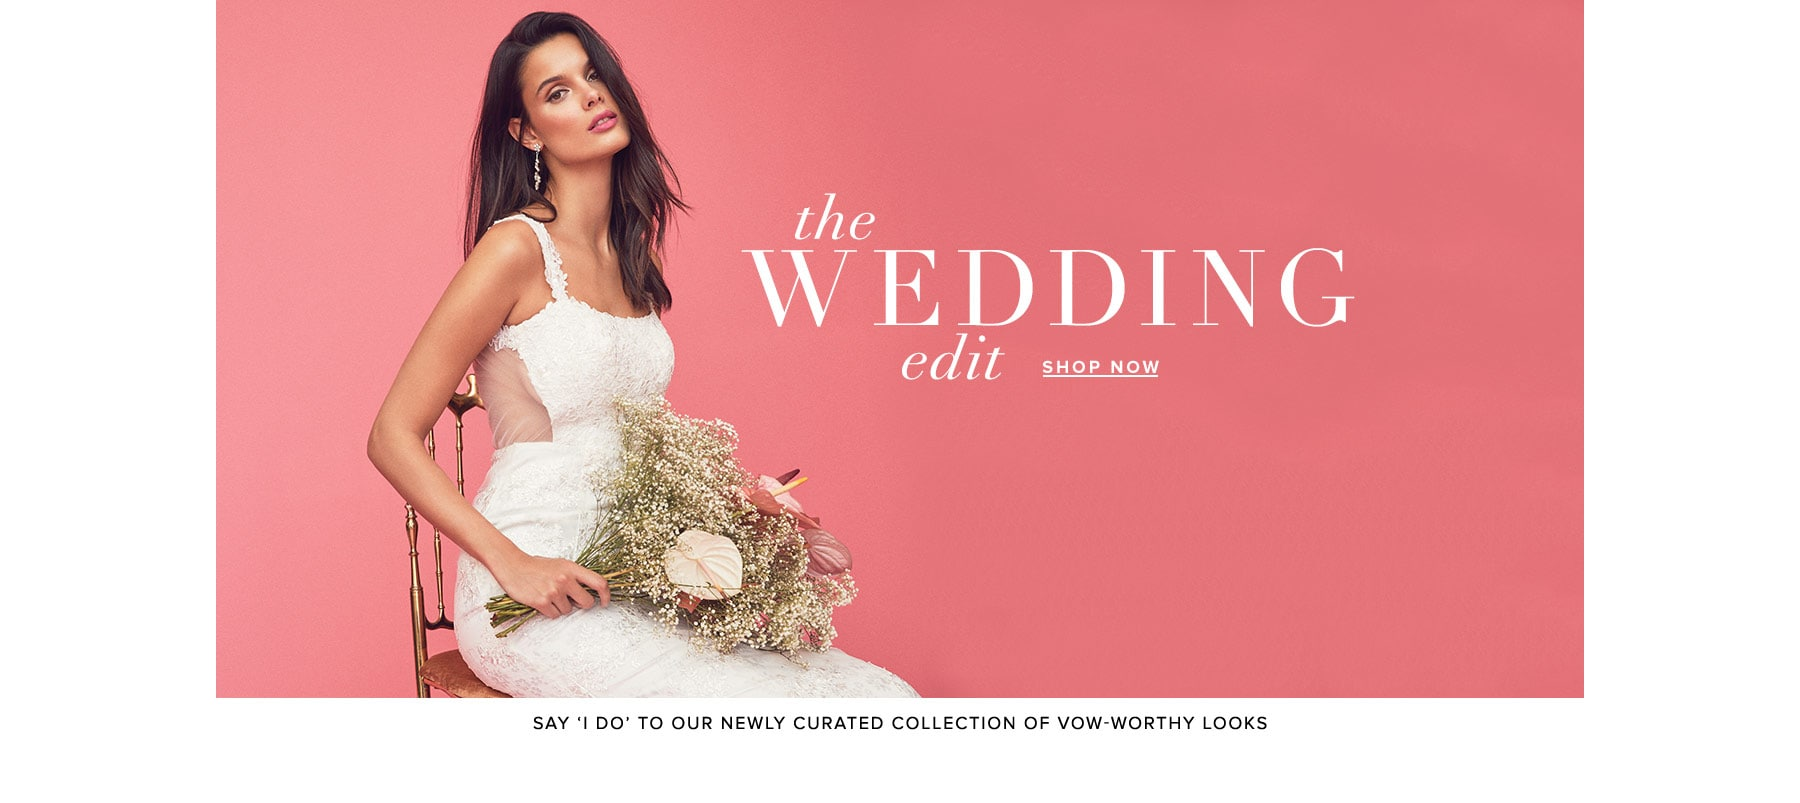 The Wedding Edit. Say 'I do' to our newly curated collection of vow-worthy looks. Shop Now.